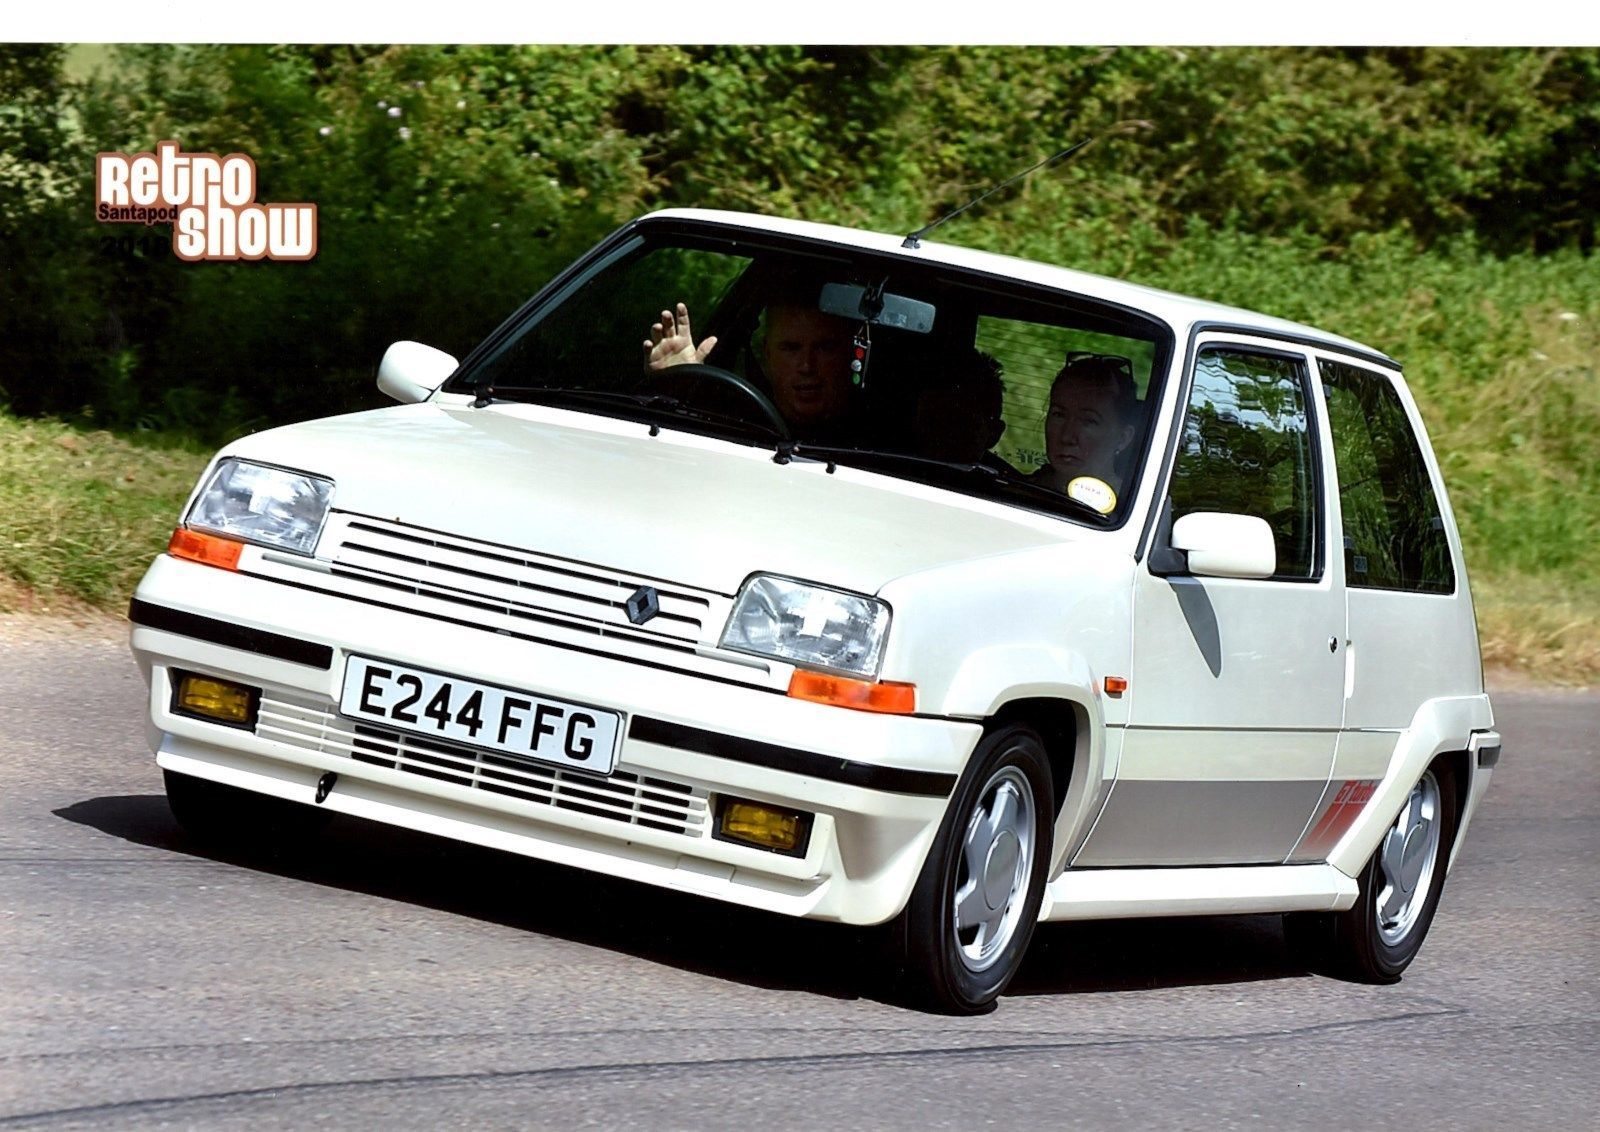 Renault 5 Gt Turbo Phase 2 Pearl White 1988 Renault 5 Gt Turbo Renault 5 Renault